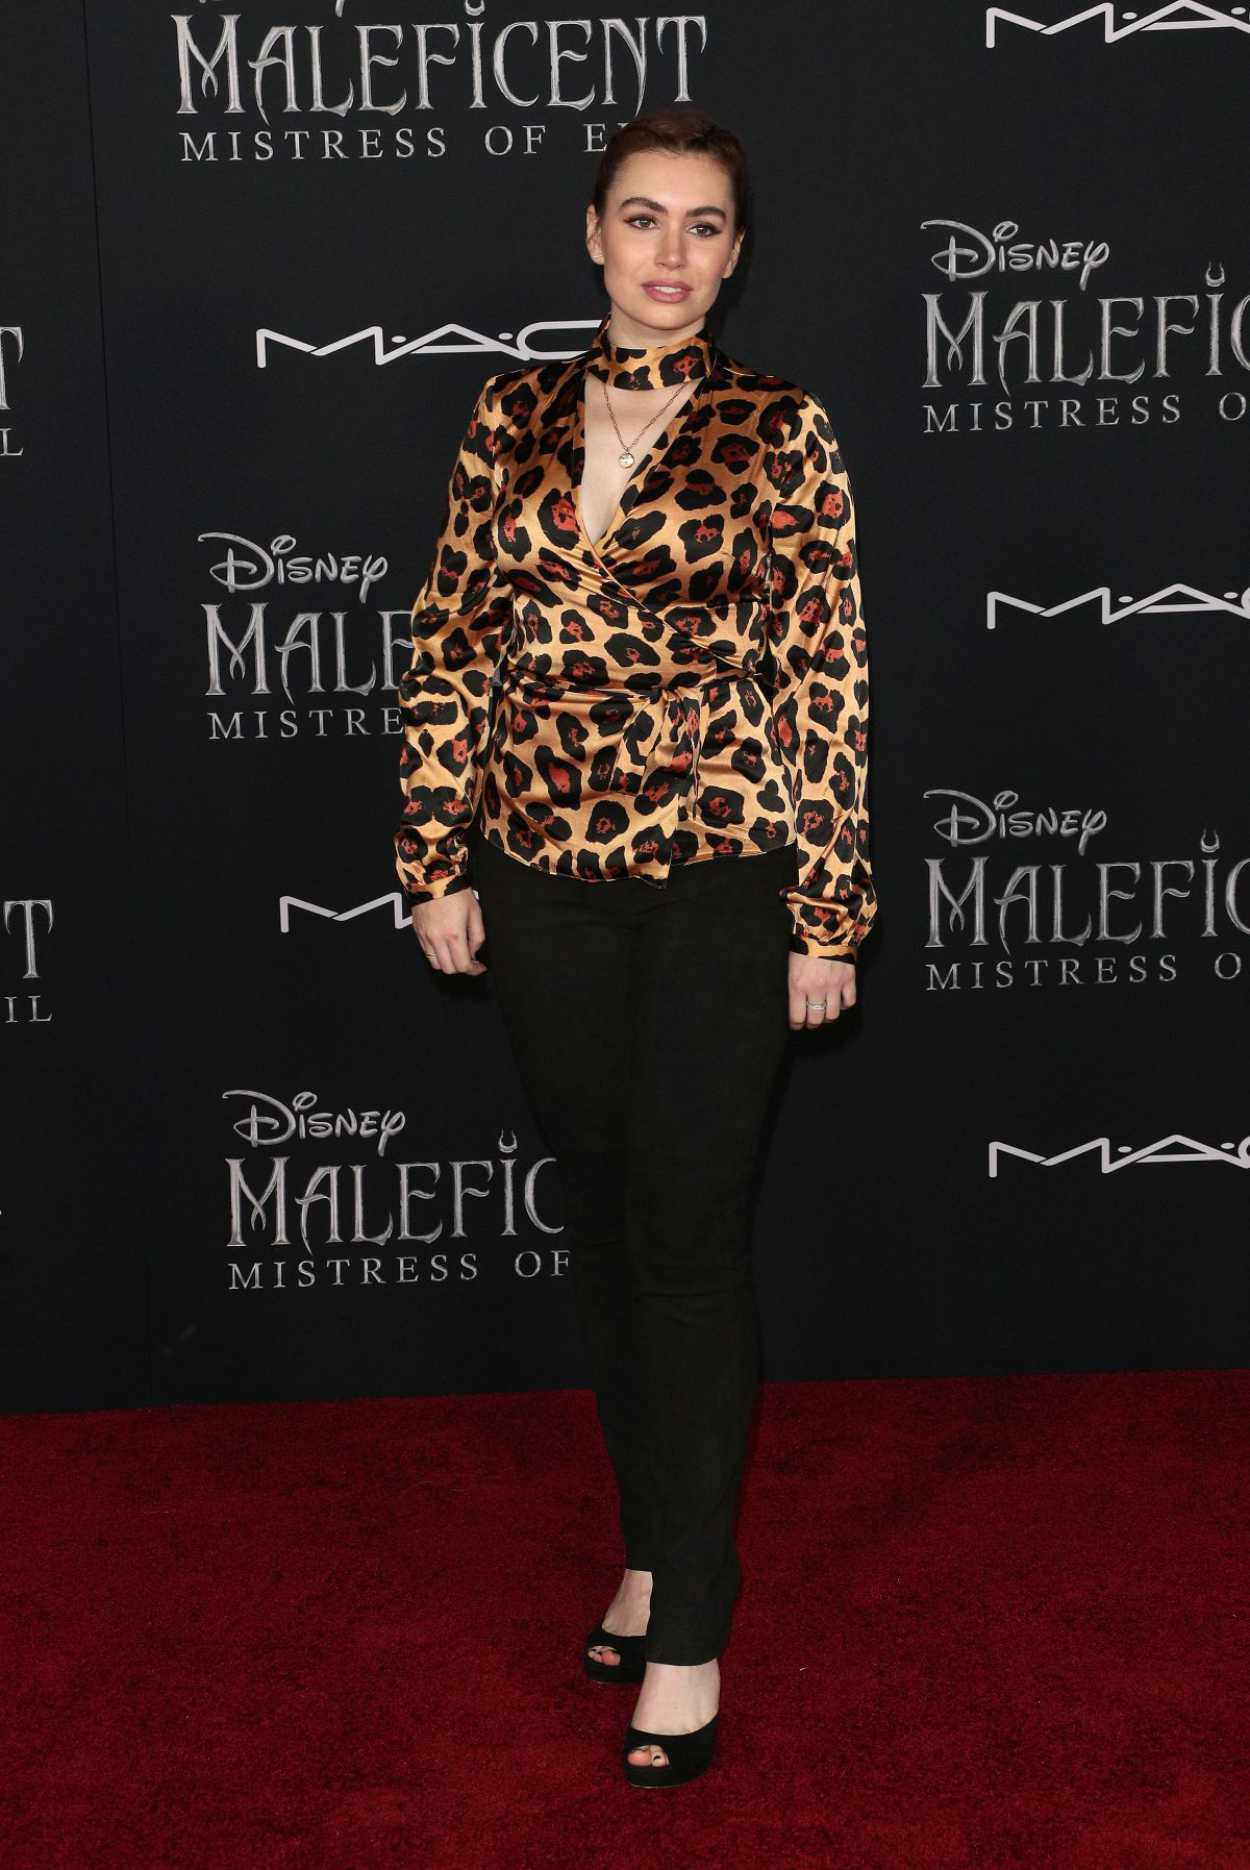 Sophie Simmons Attends The Maleficent Mistress Of Evi